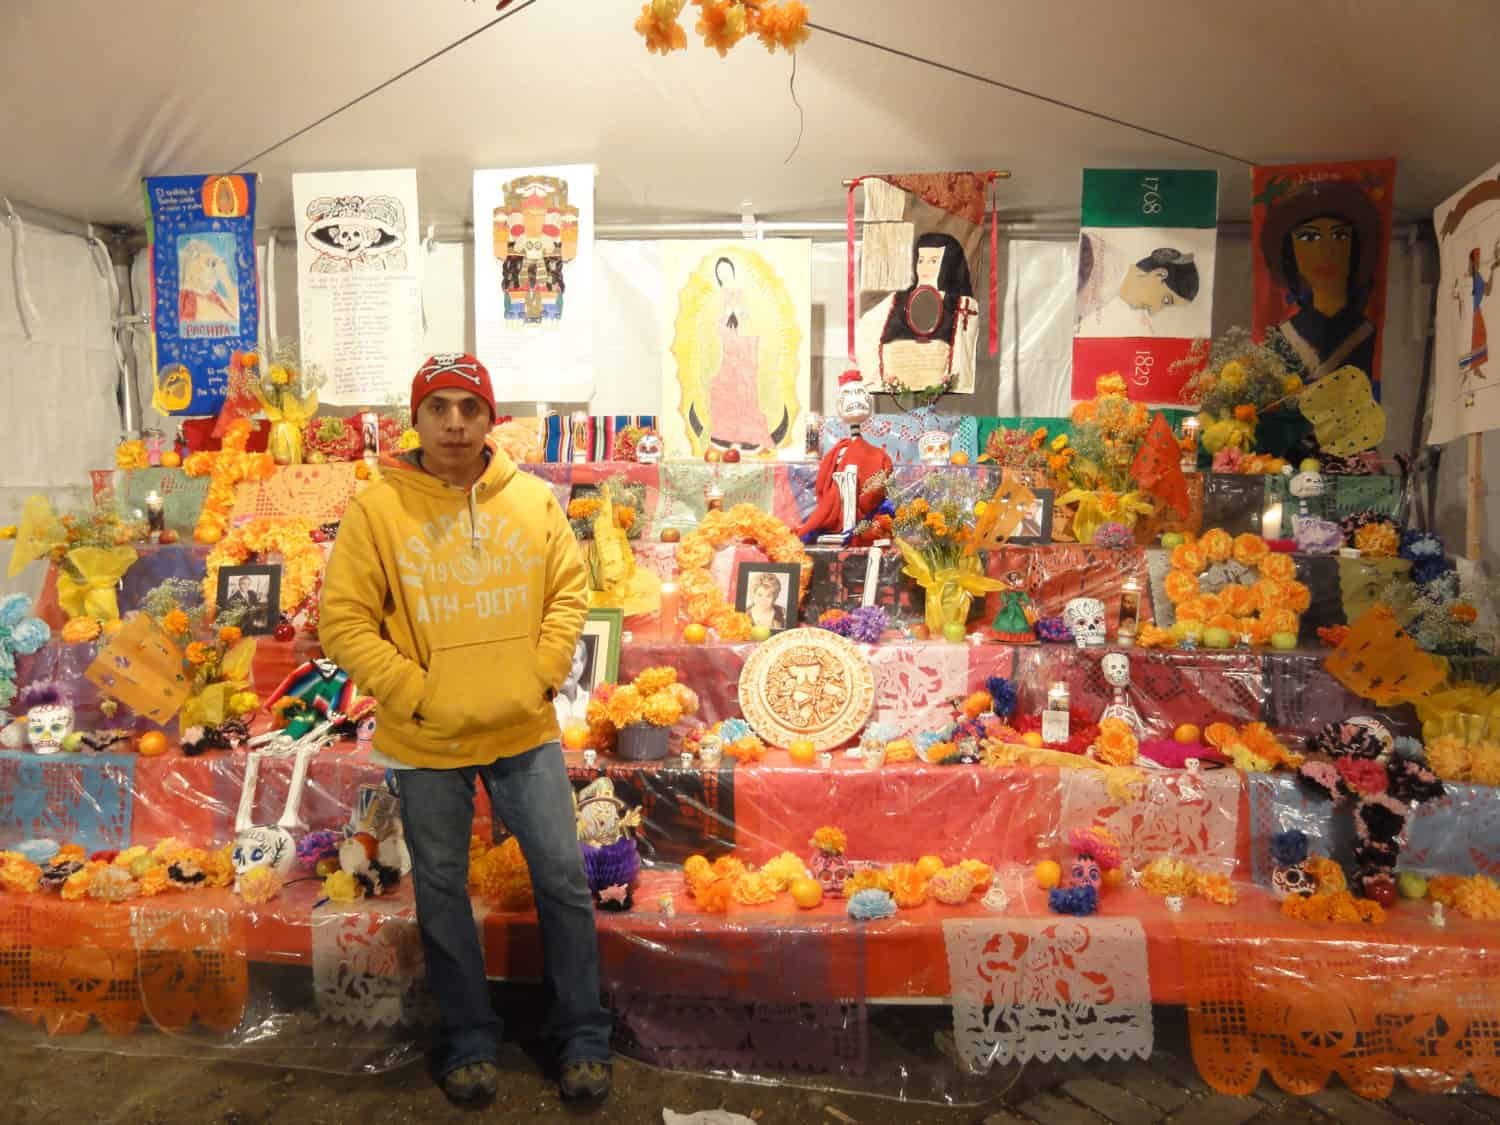 A man in front of a colorful display